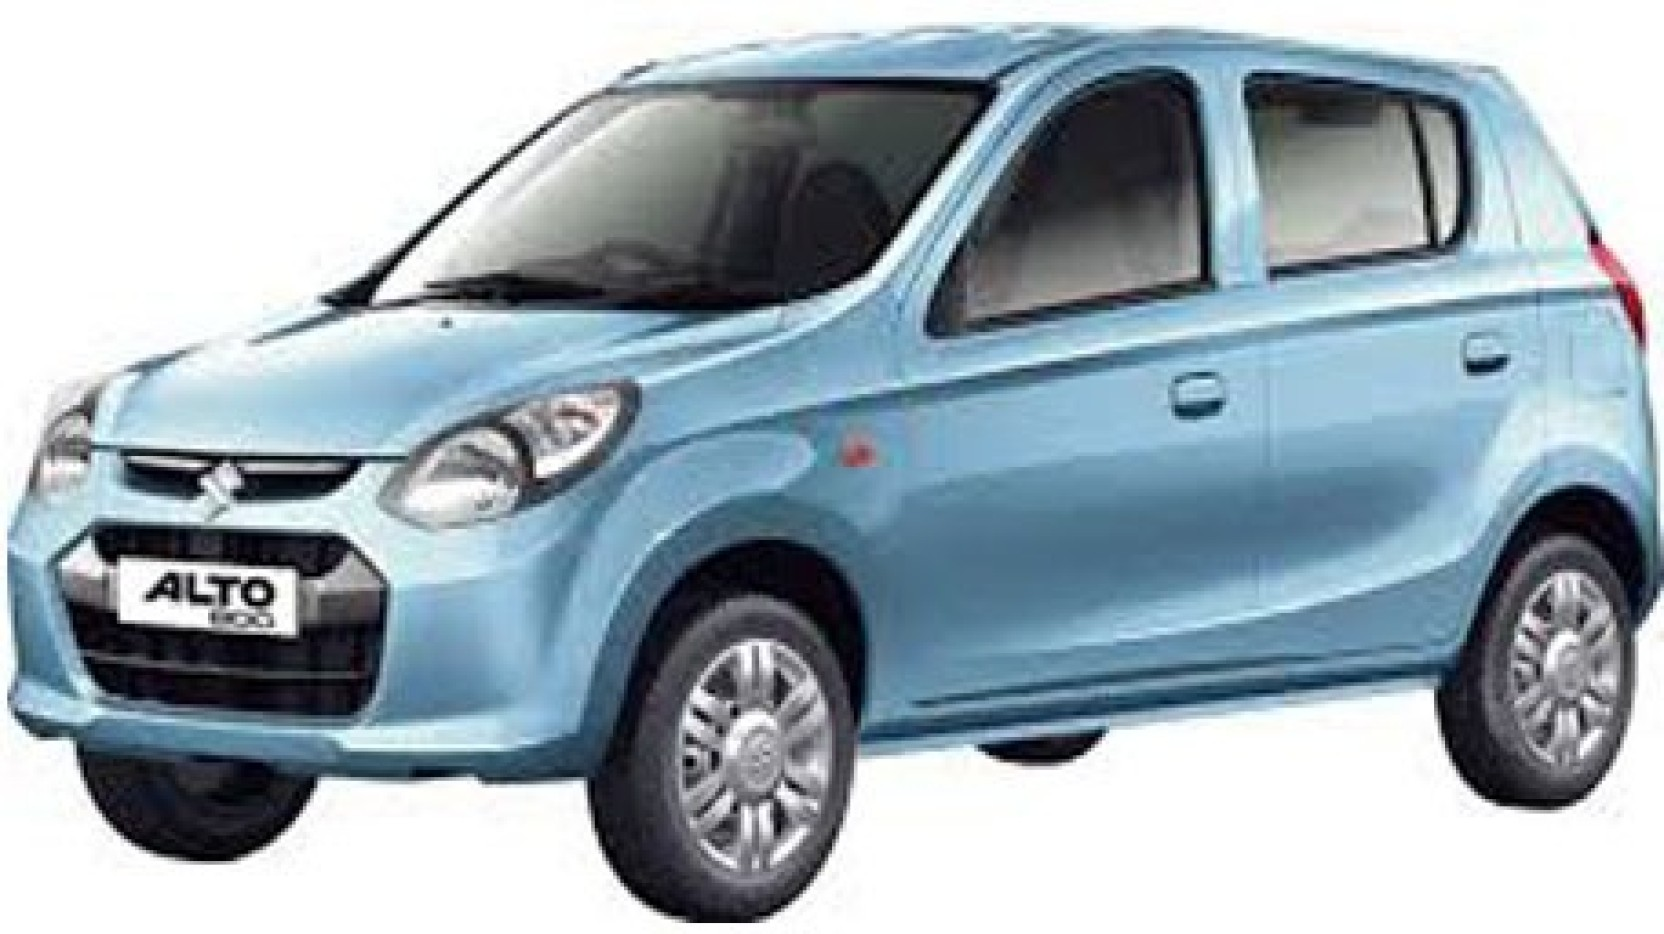 Maruti Suzuki Alto 800 Vxi With Airbag (Ex-showroom price starting from Rs  3,64,953) (Book for Rs 10,000)